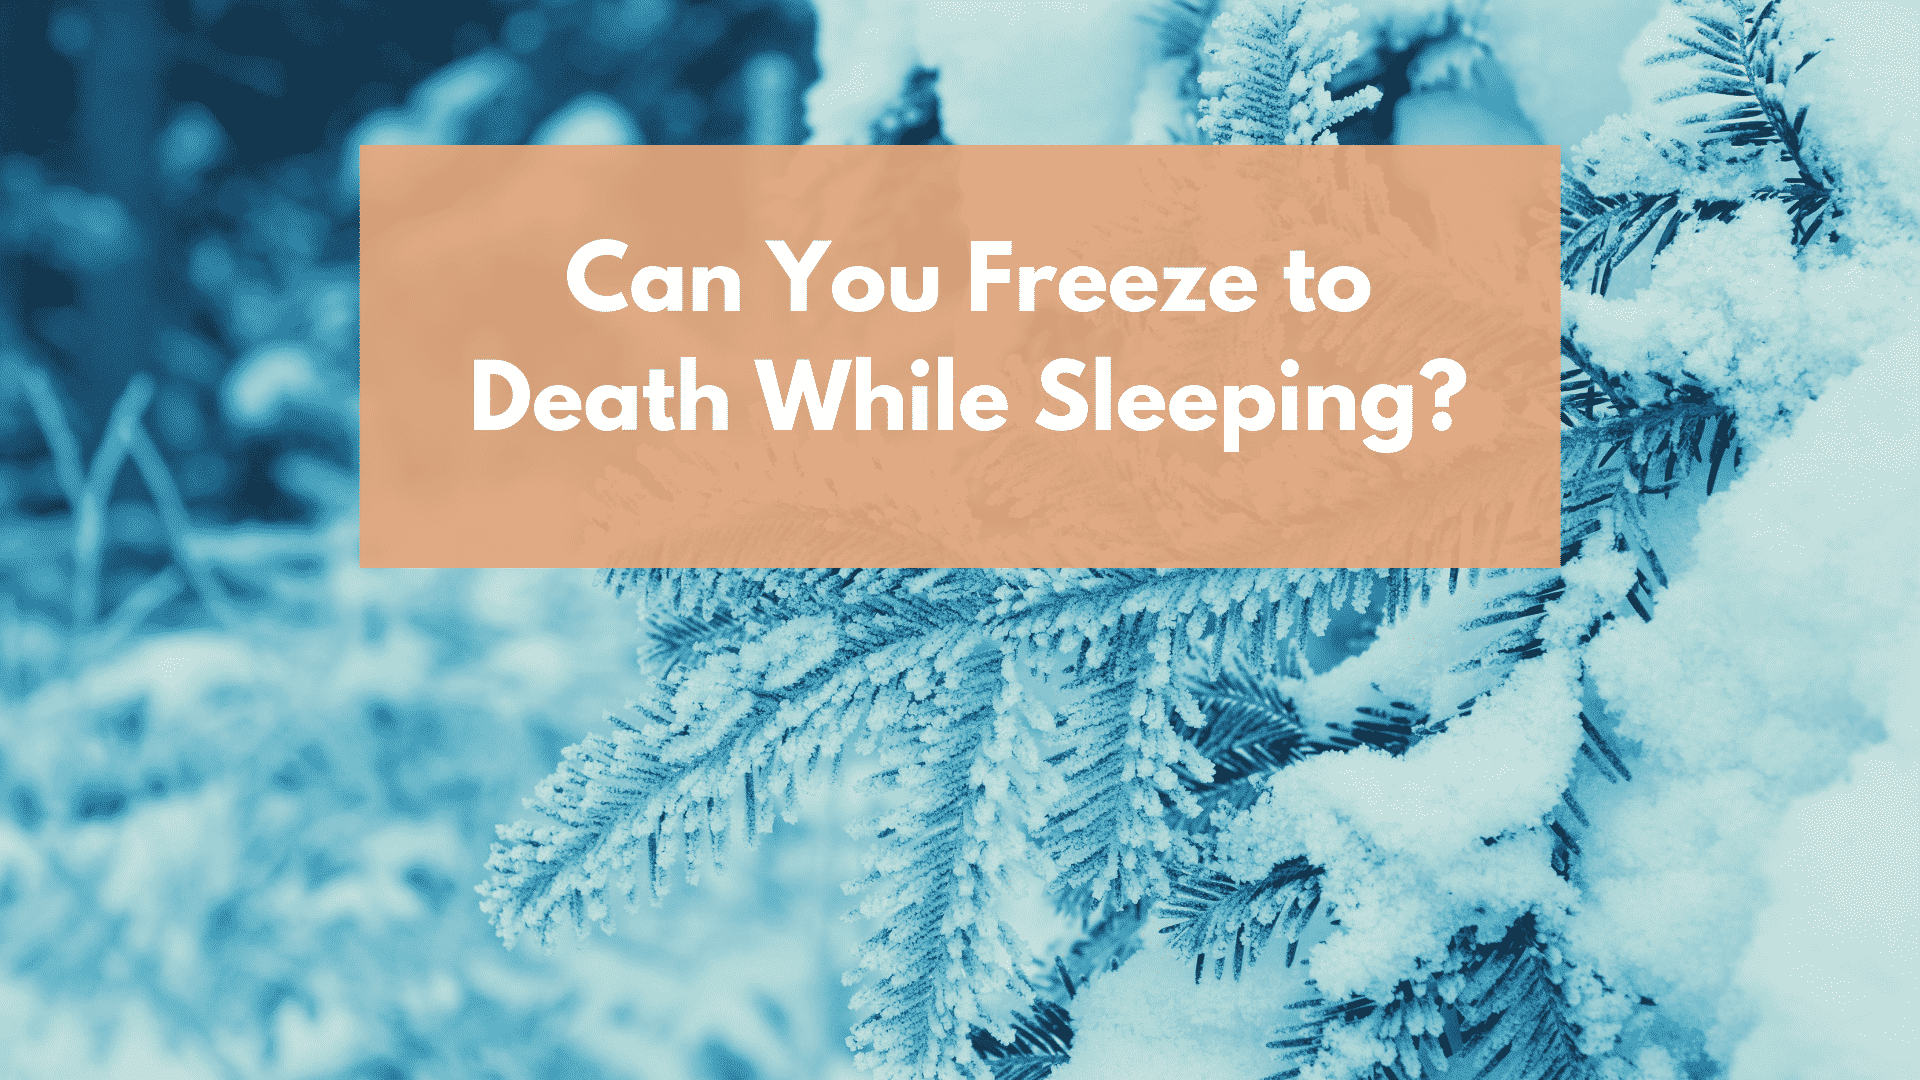 Can you freeze to death while sleeping